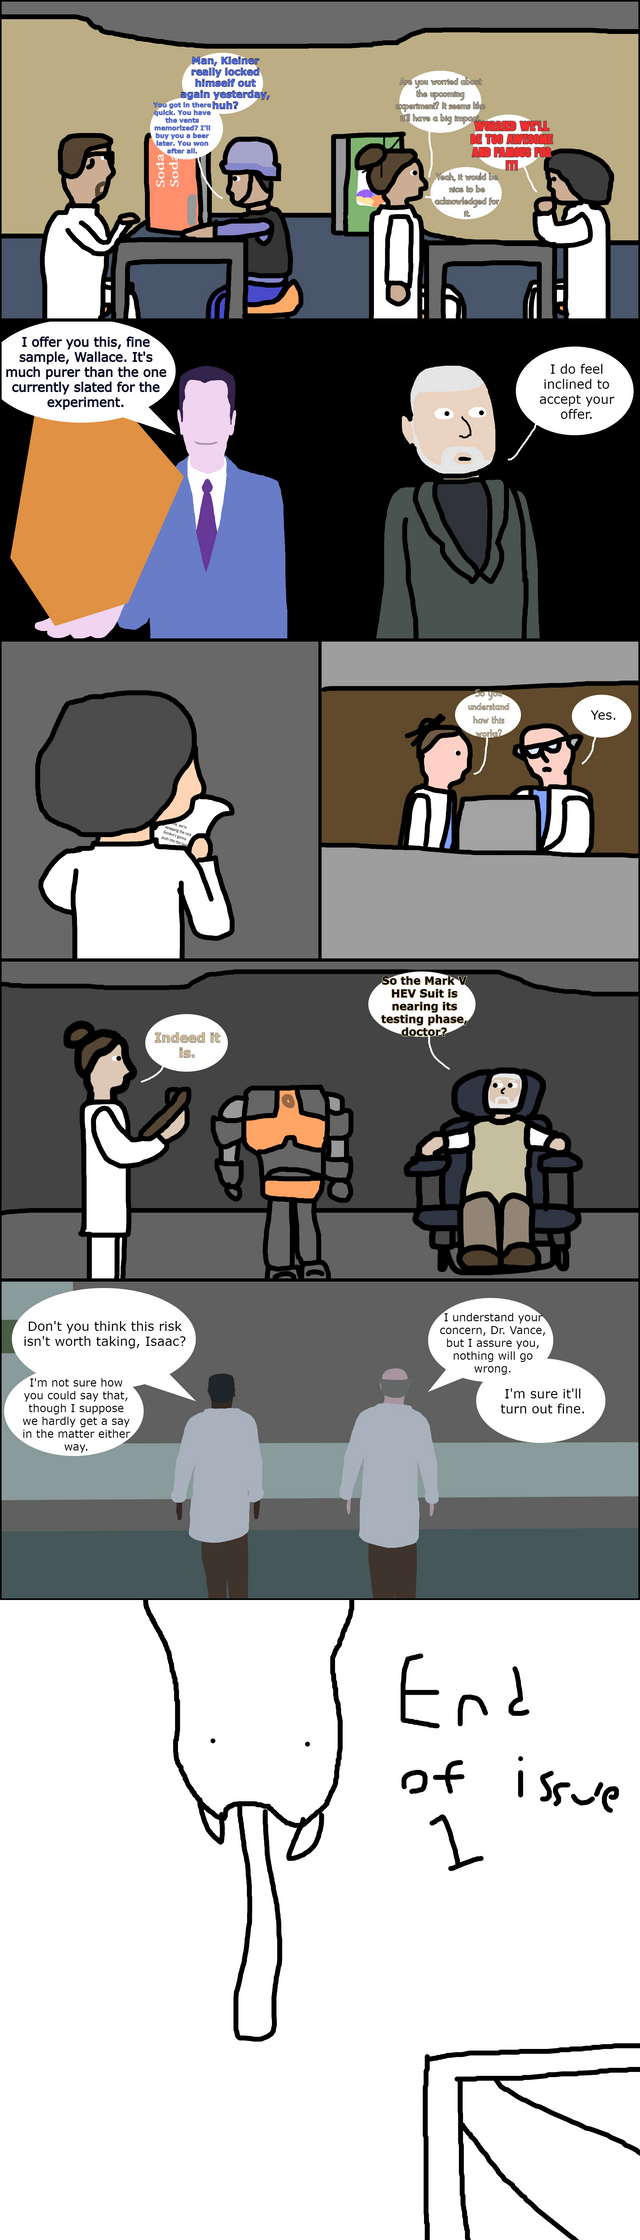 I'm proud to finally release the first issue of Bad Half-Life! I hope you all like it!